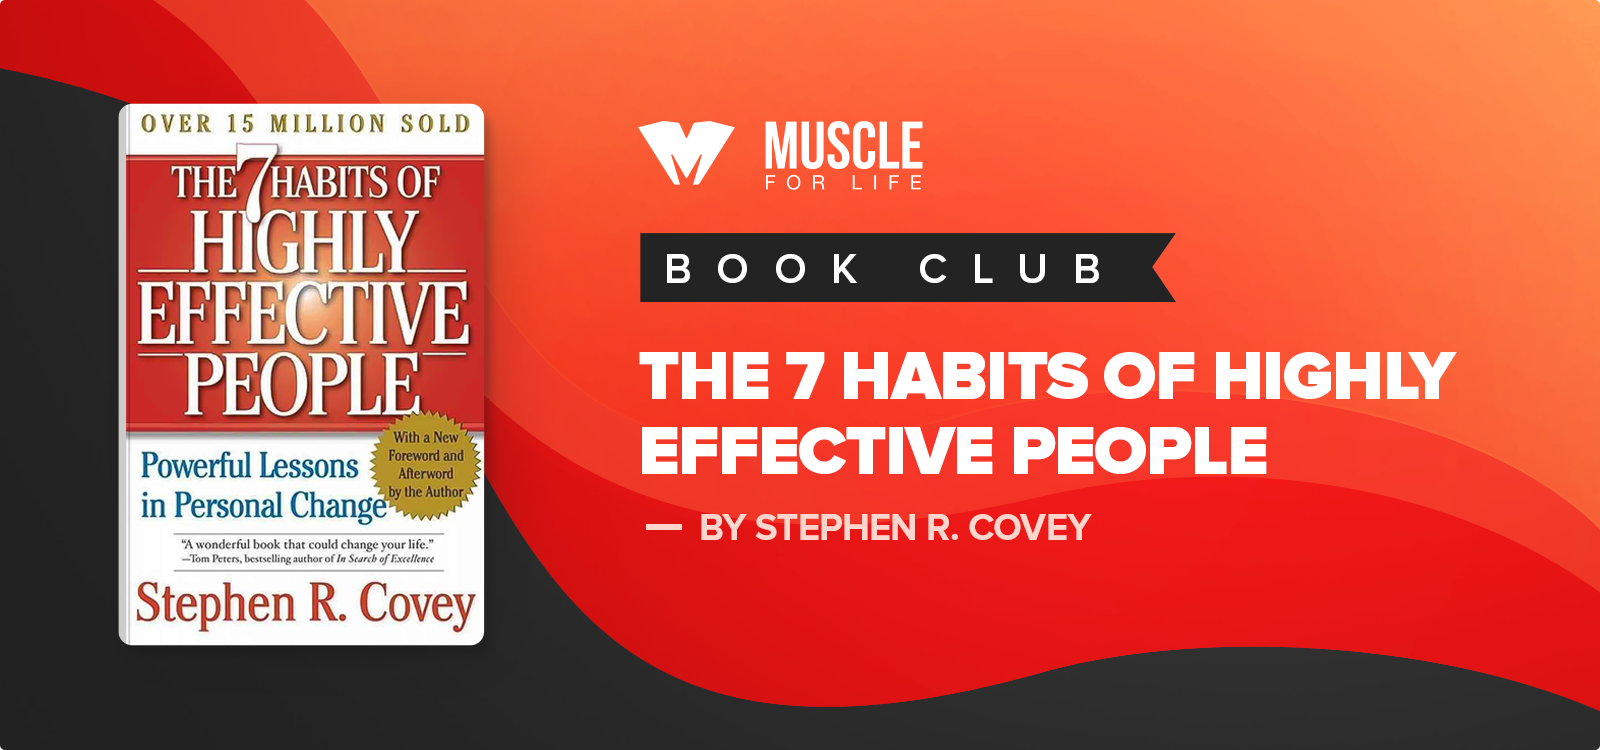 MFL Book Club: The 7 Habits of Highly Effective People by Stephen Covey